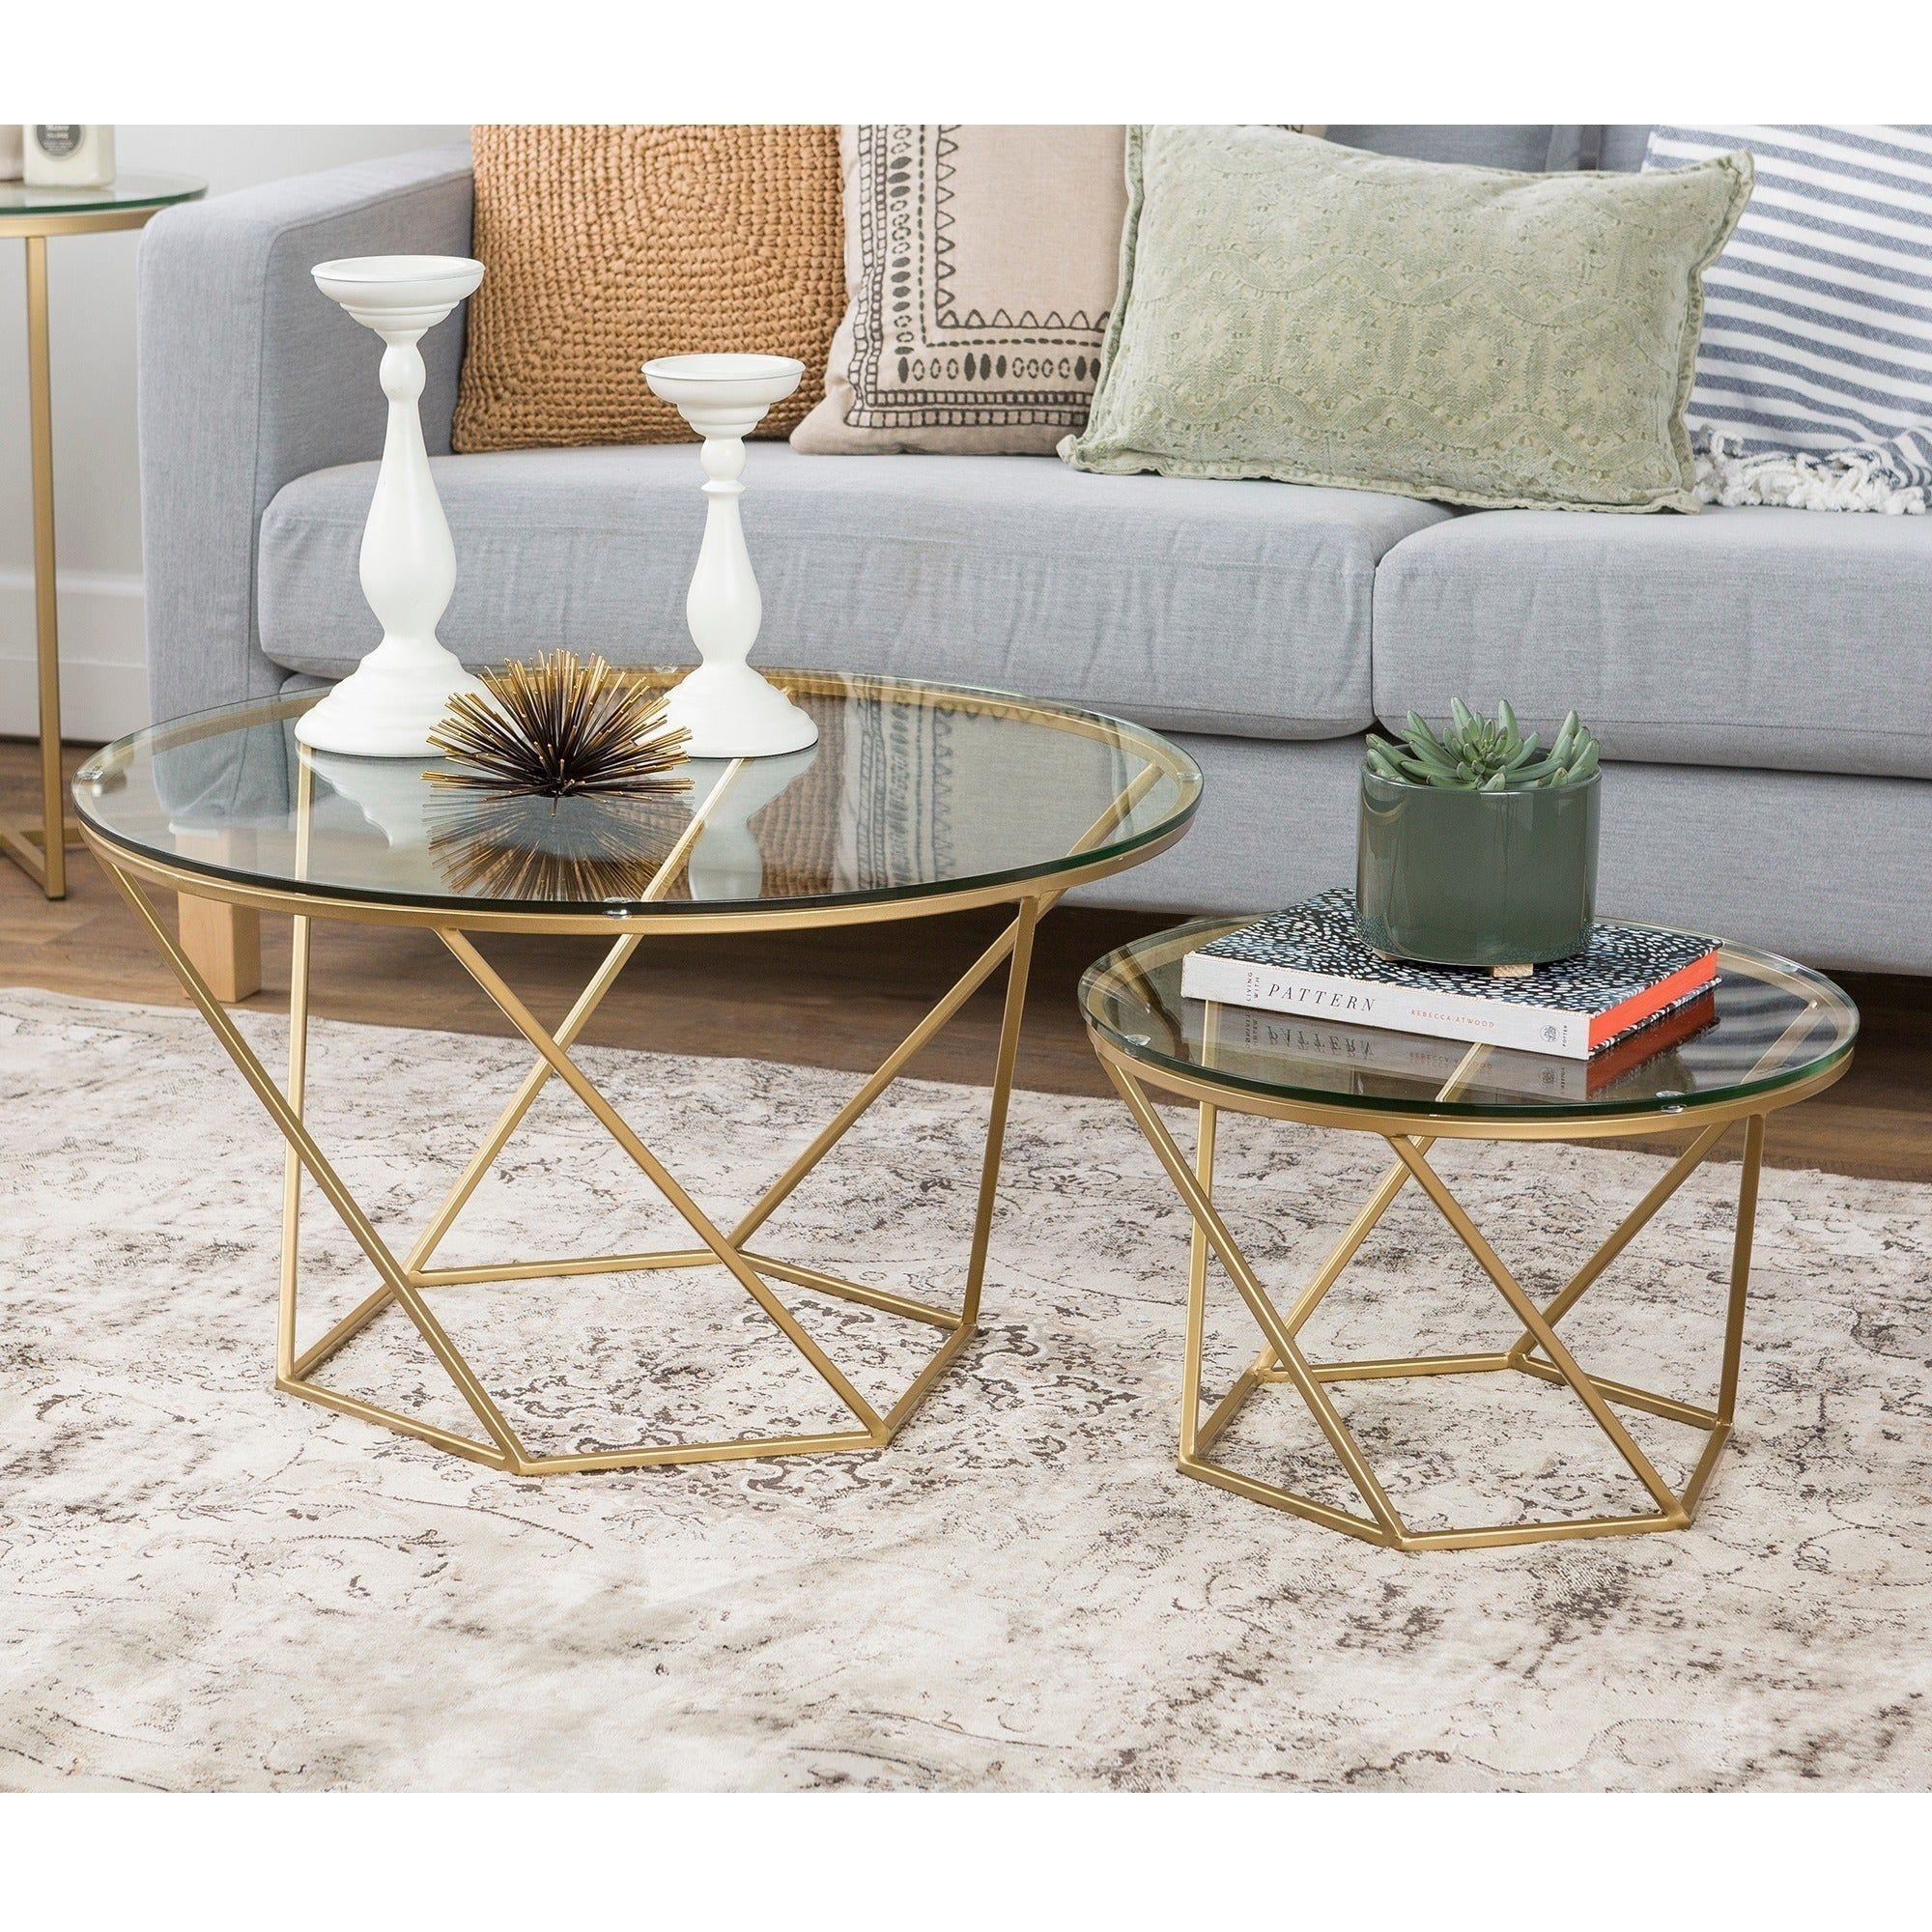 Silver Orchid Grant Geometric Glass Nesting Coffee Tables In Gold